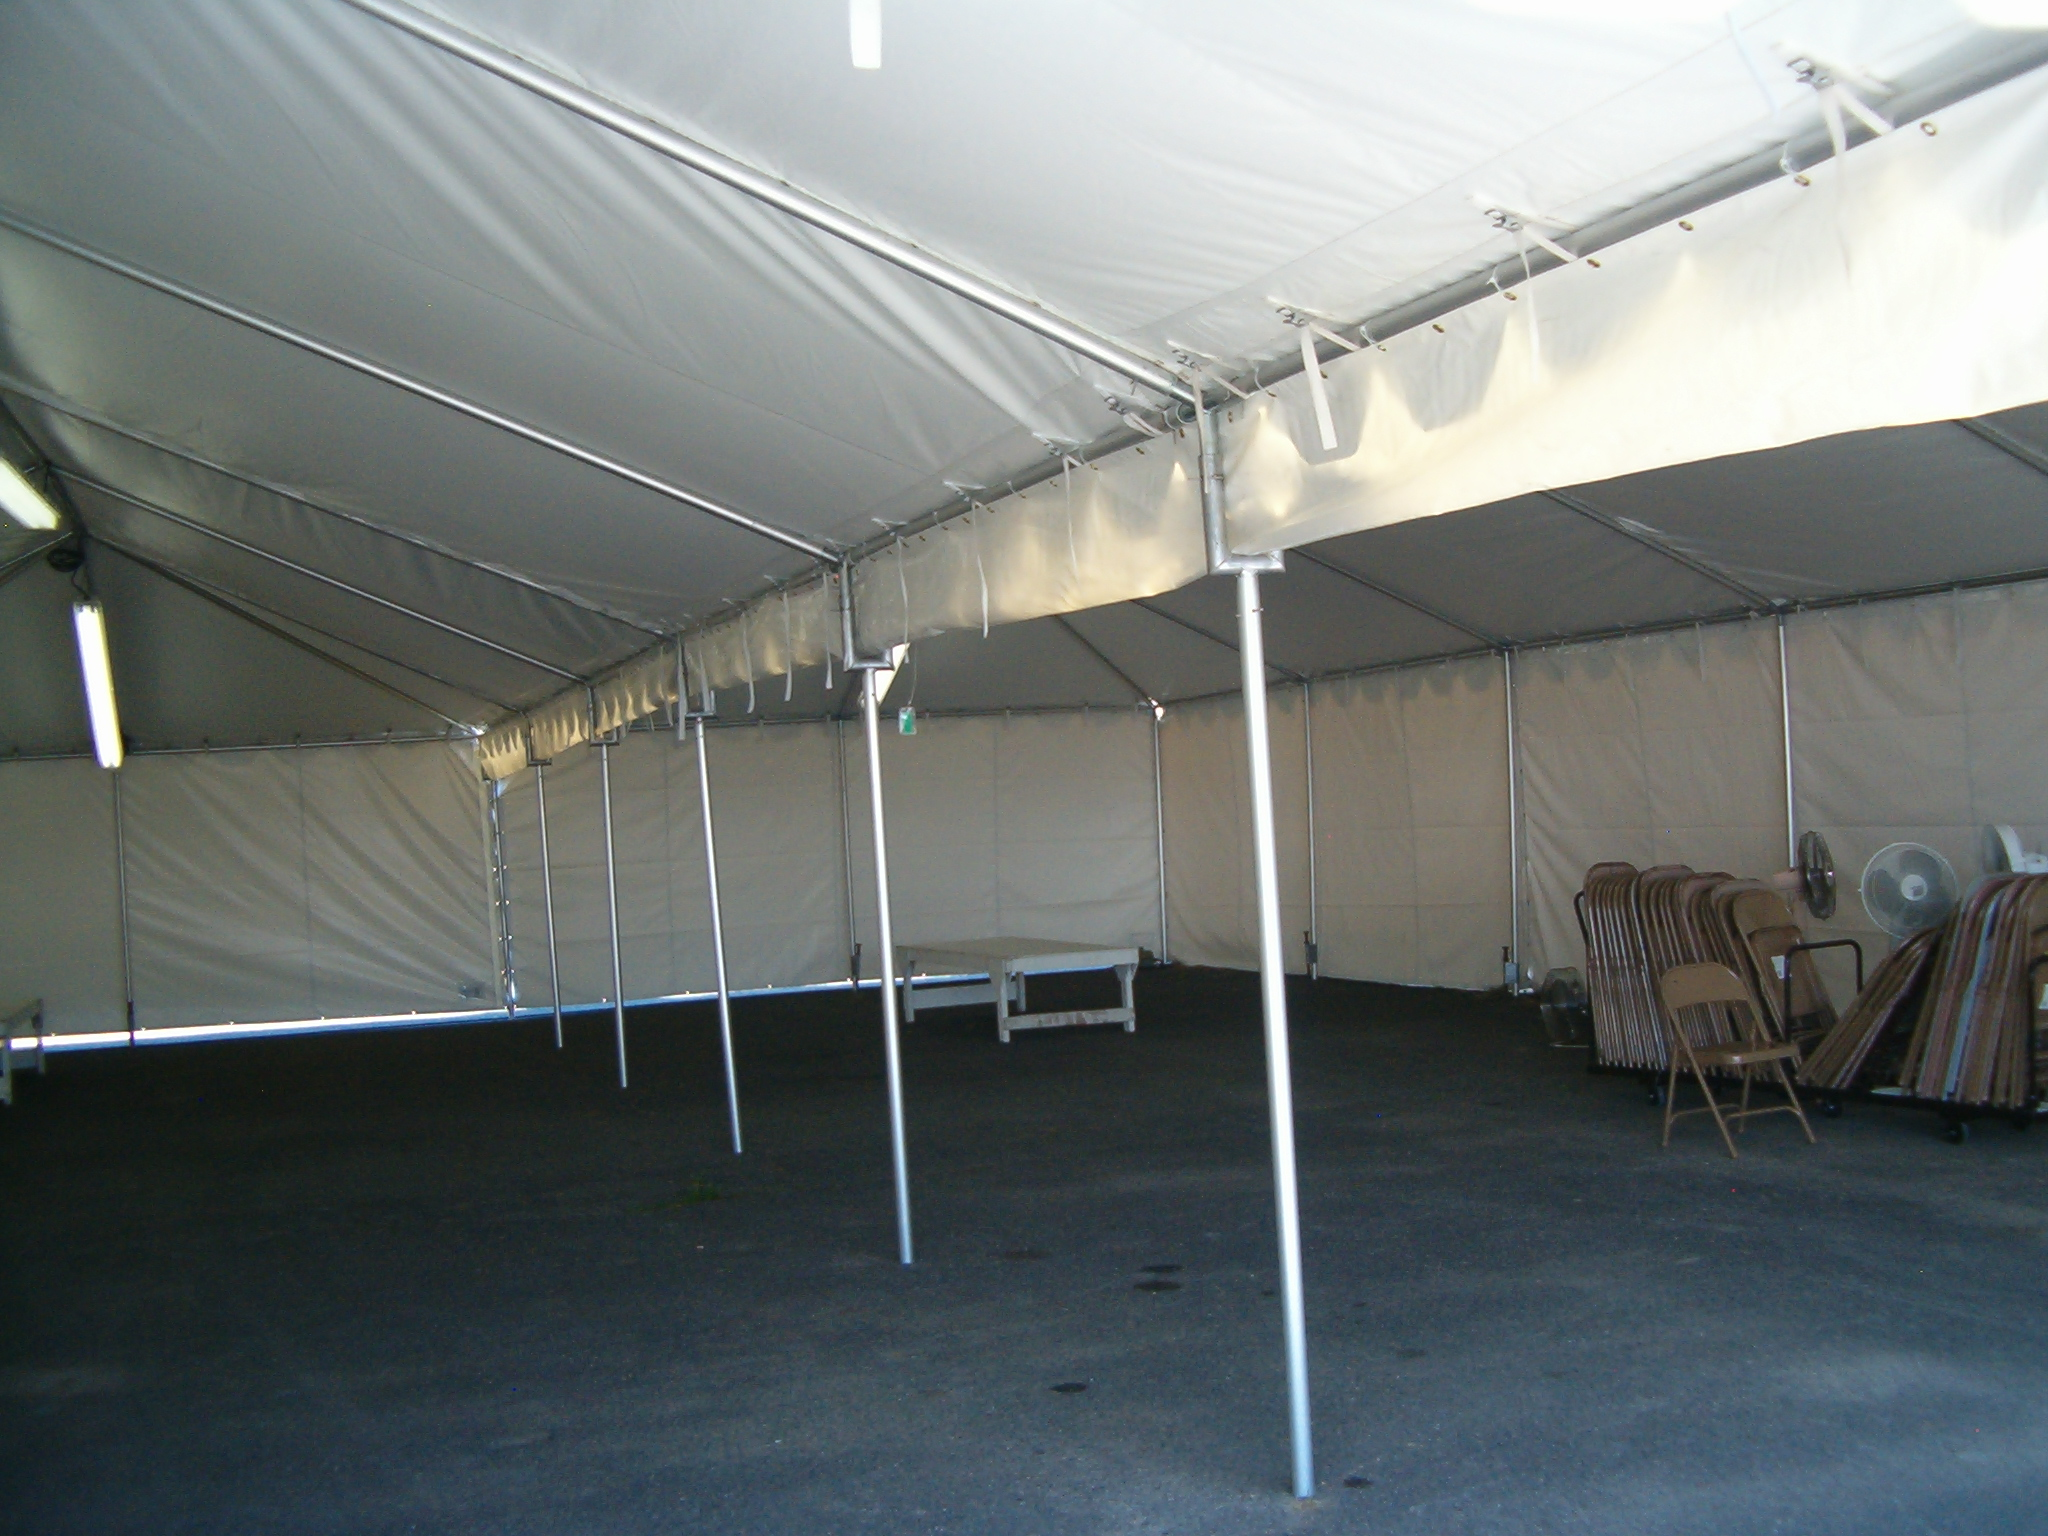 gutter connects two frame tents